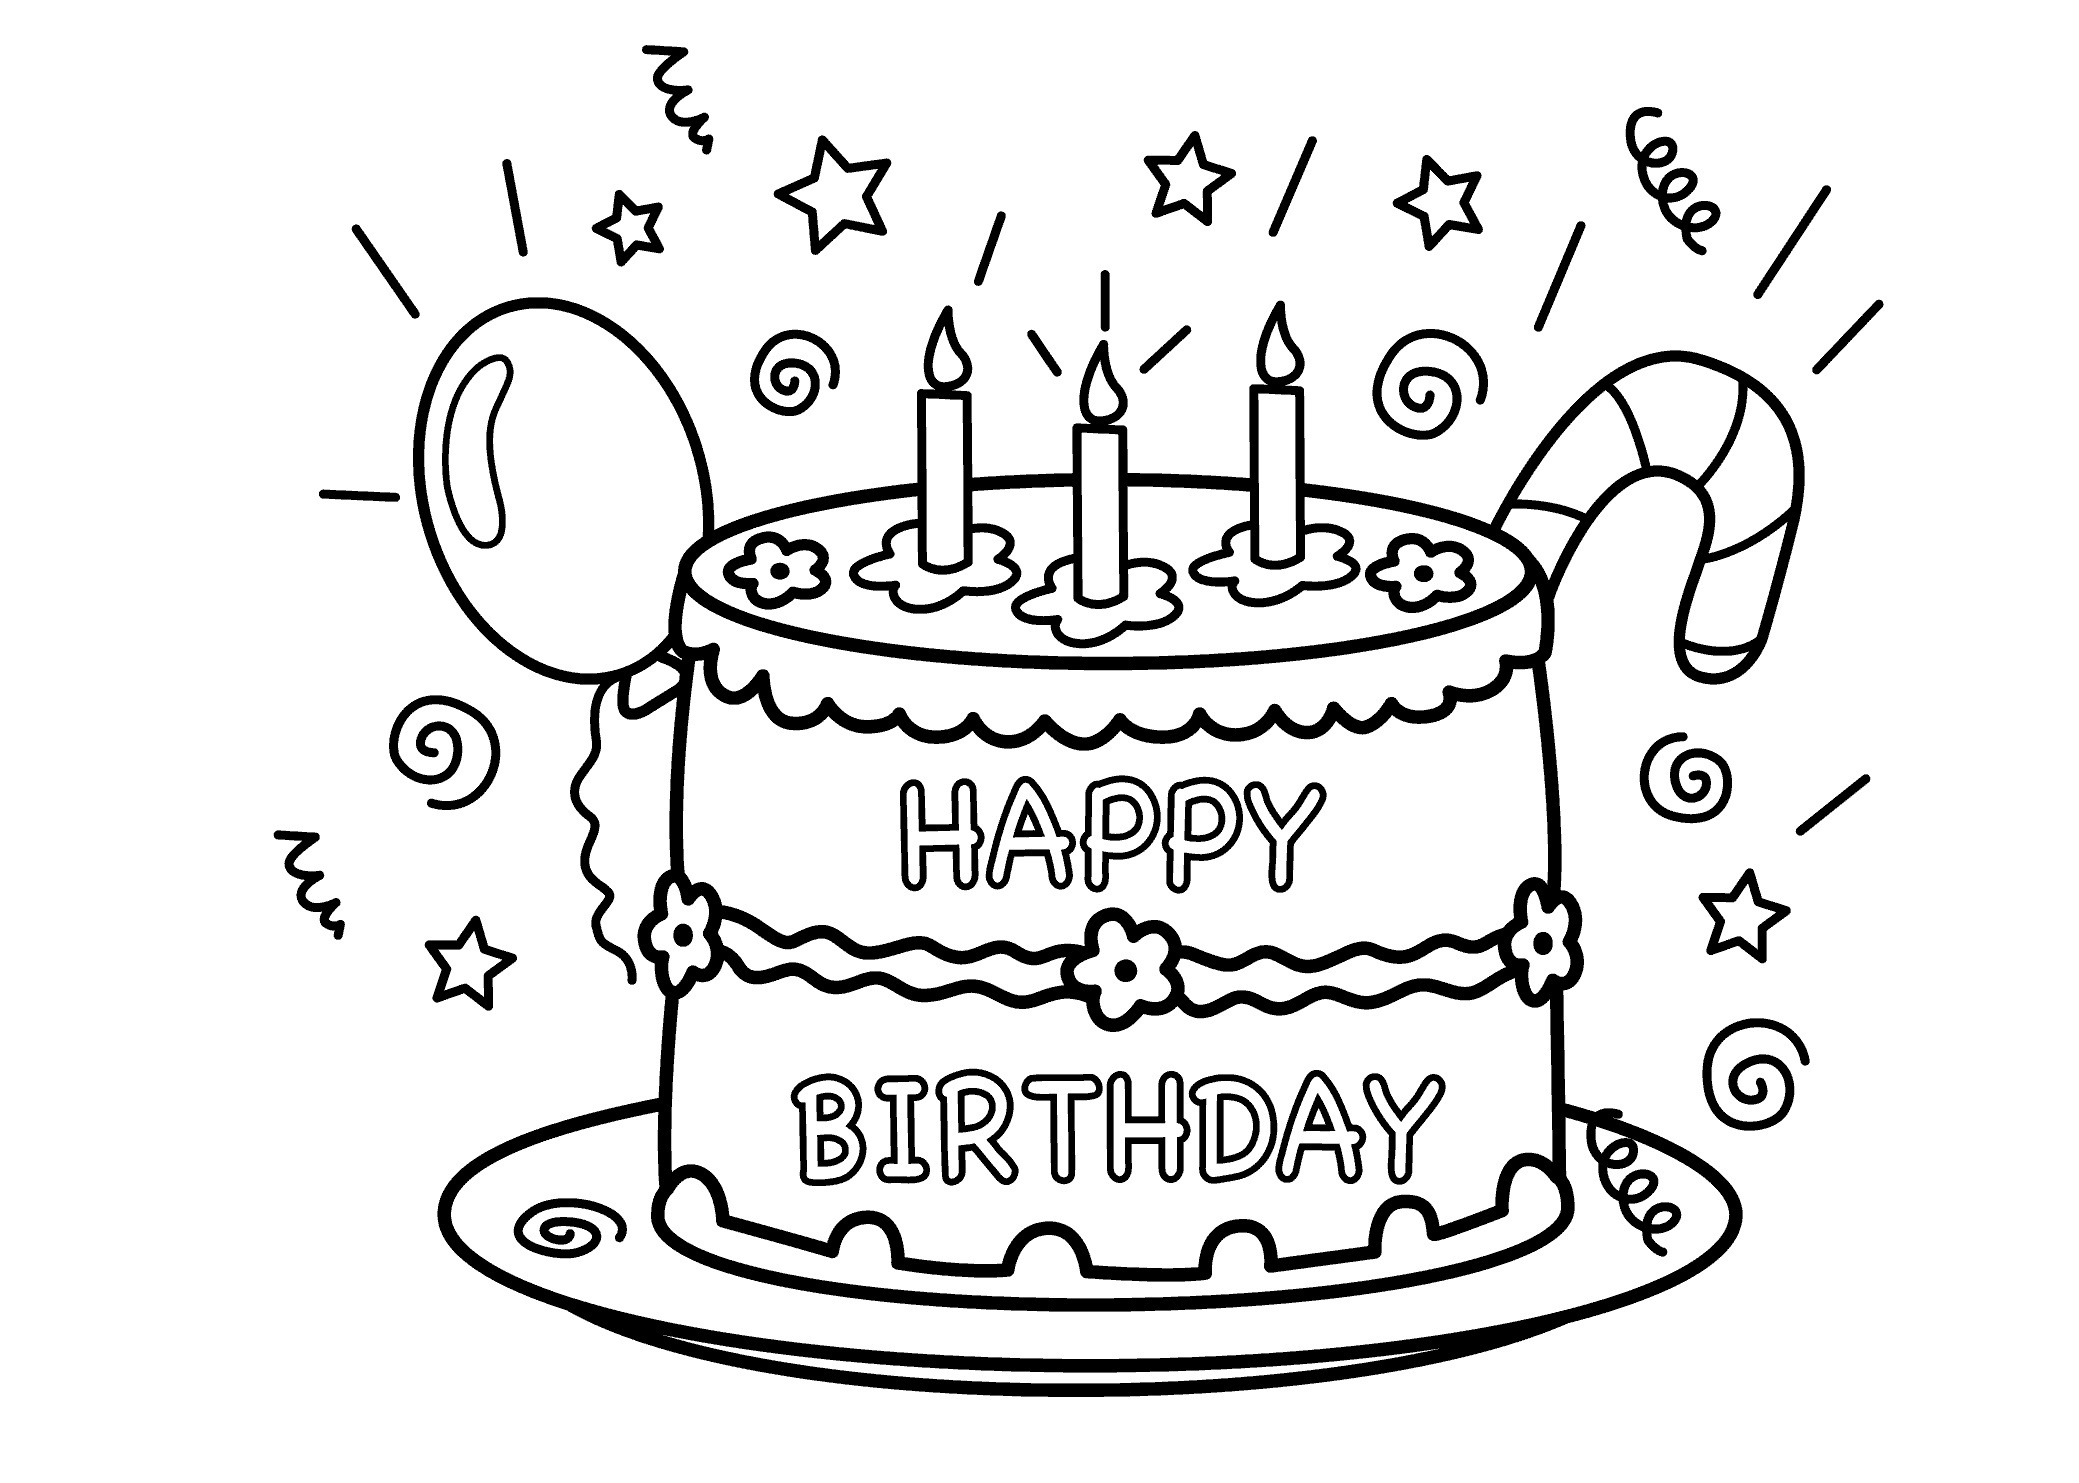 Free Printable Birthday Cake Coloring Pages For Kids Birthday Printable Coloring Pages